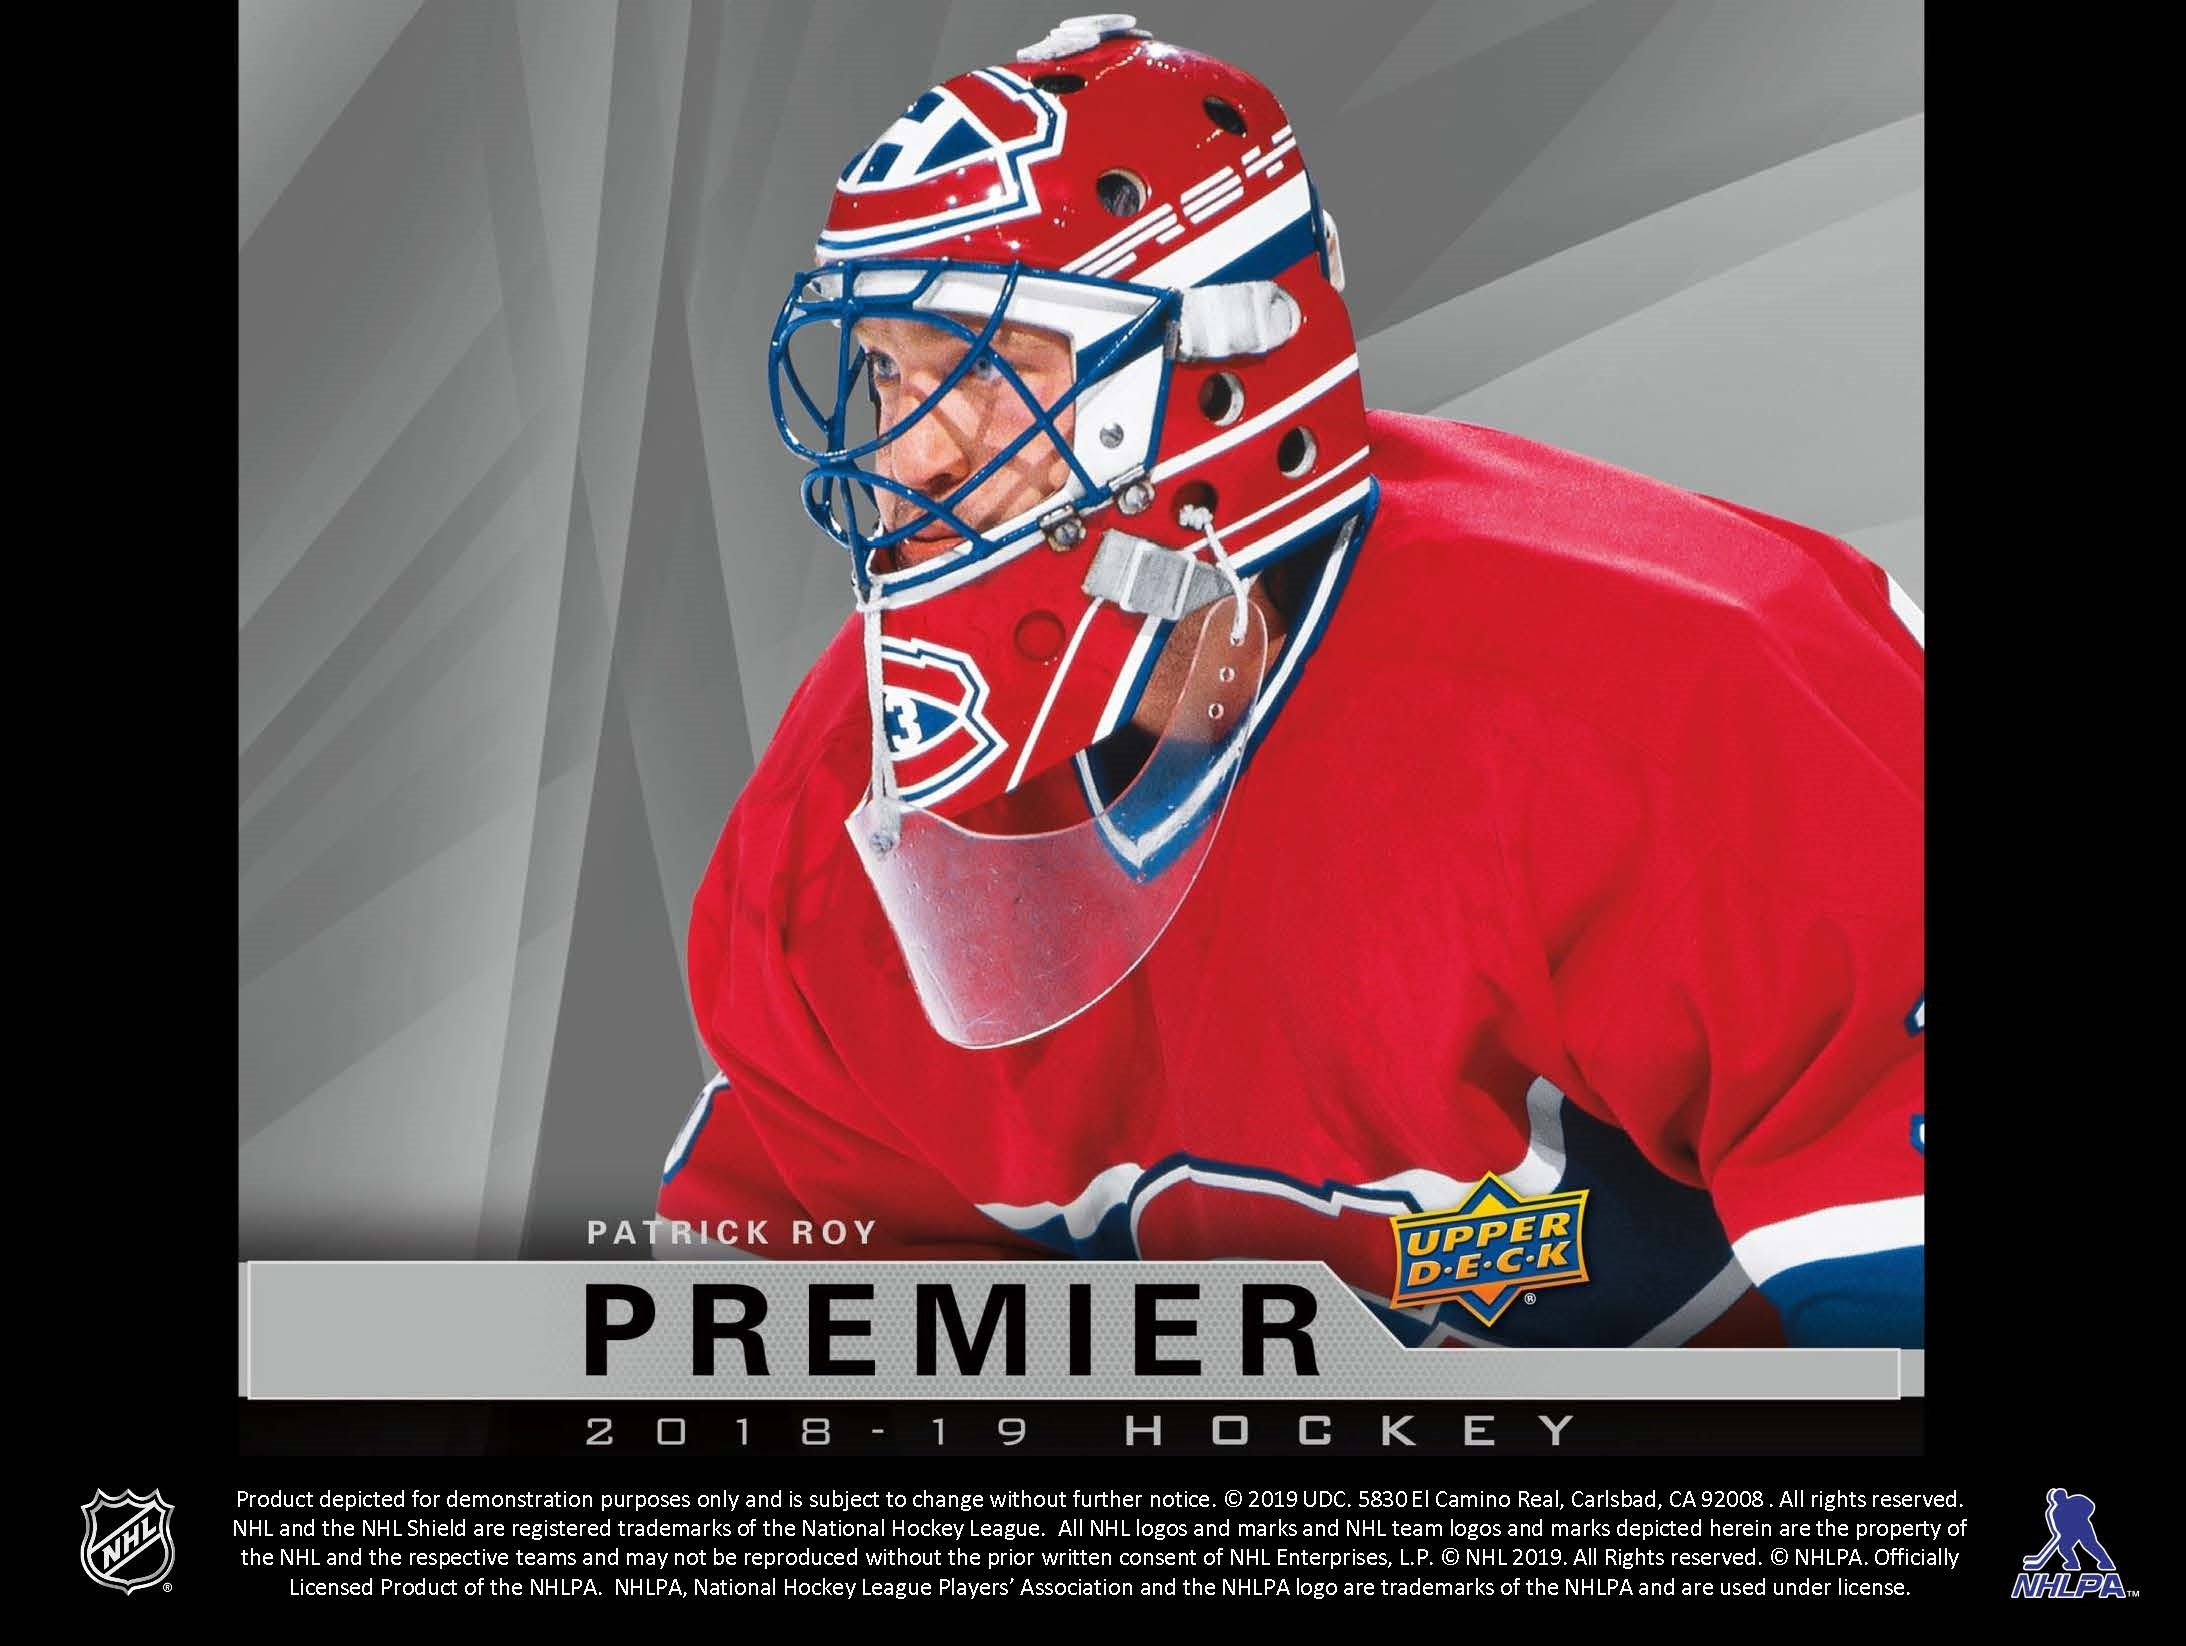 2018-19 Upper Deck Premier Hockey Checklist